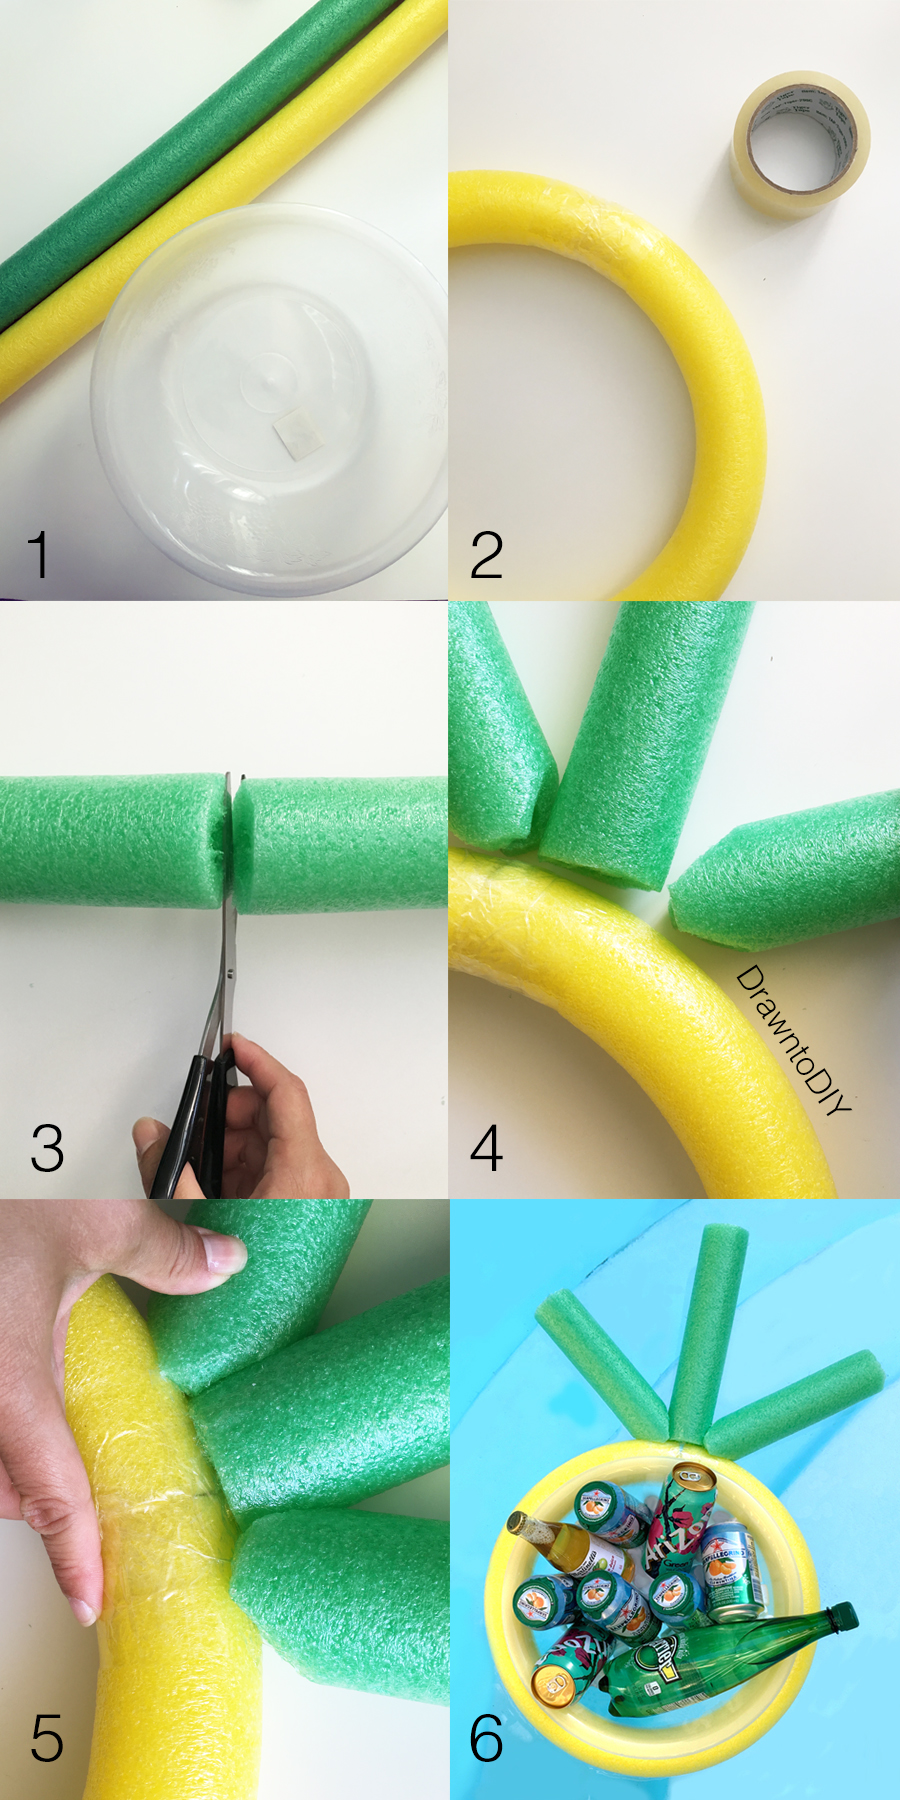 diy-pineapple-floating-cooler-drawntodiy-02